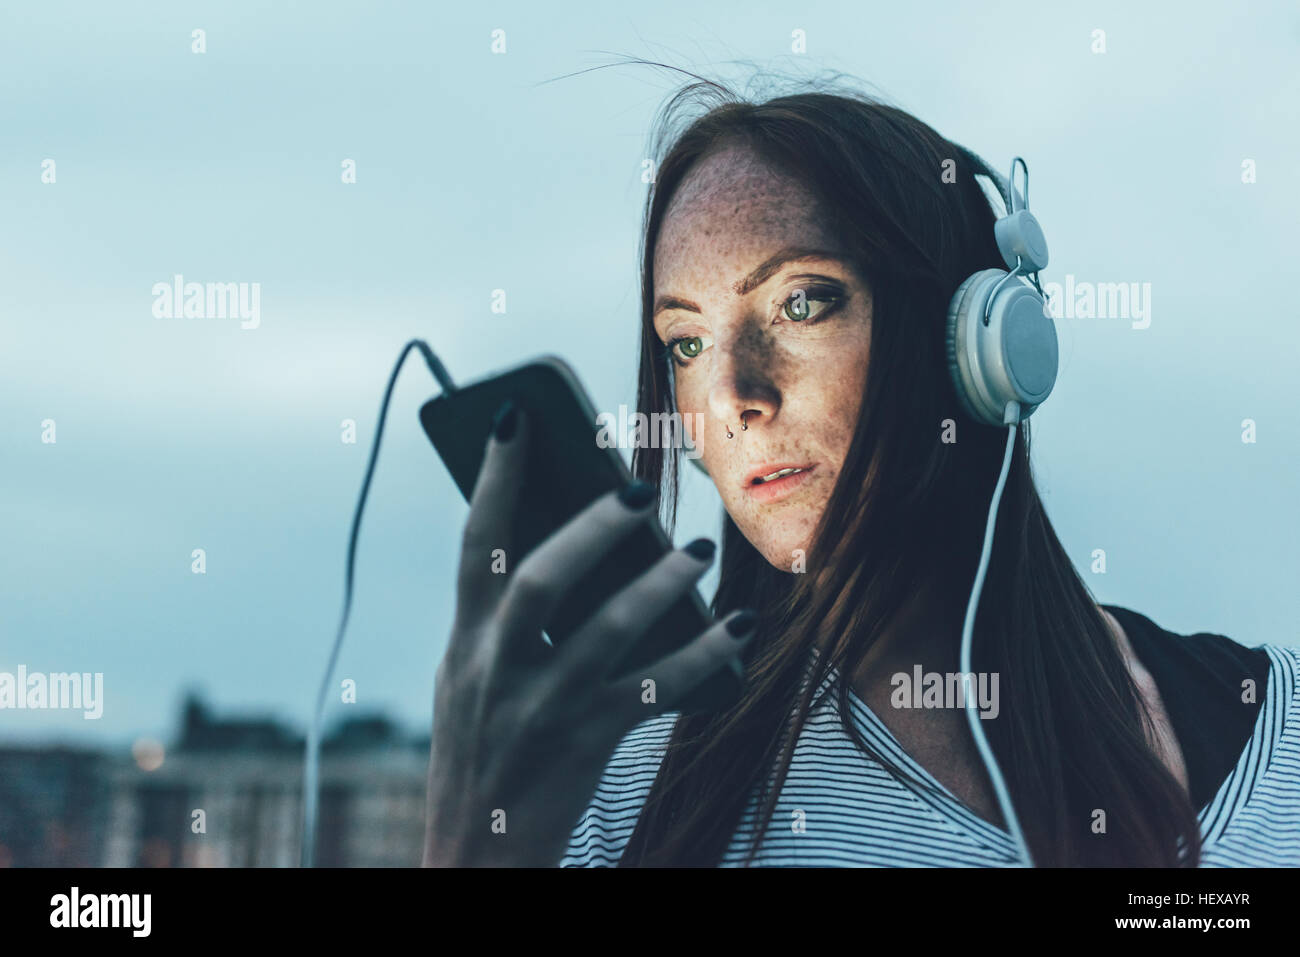 Young freckled woman listening to headphones looking at smartphone at dusk - Stock Image